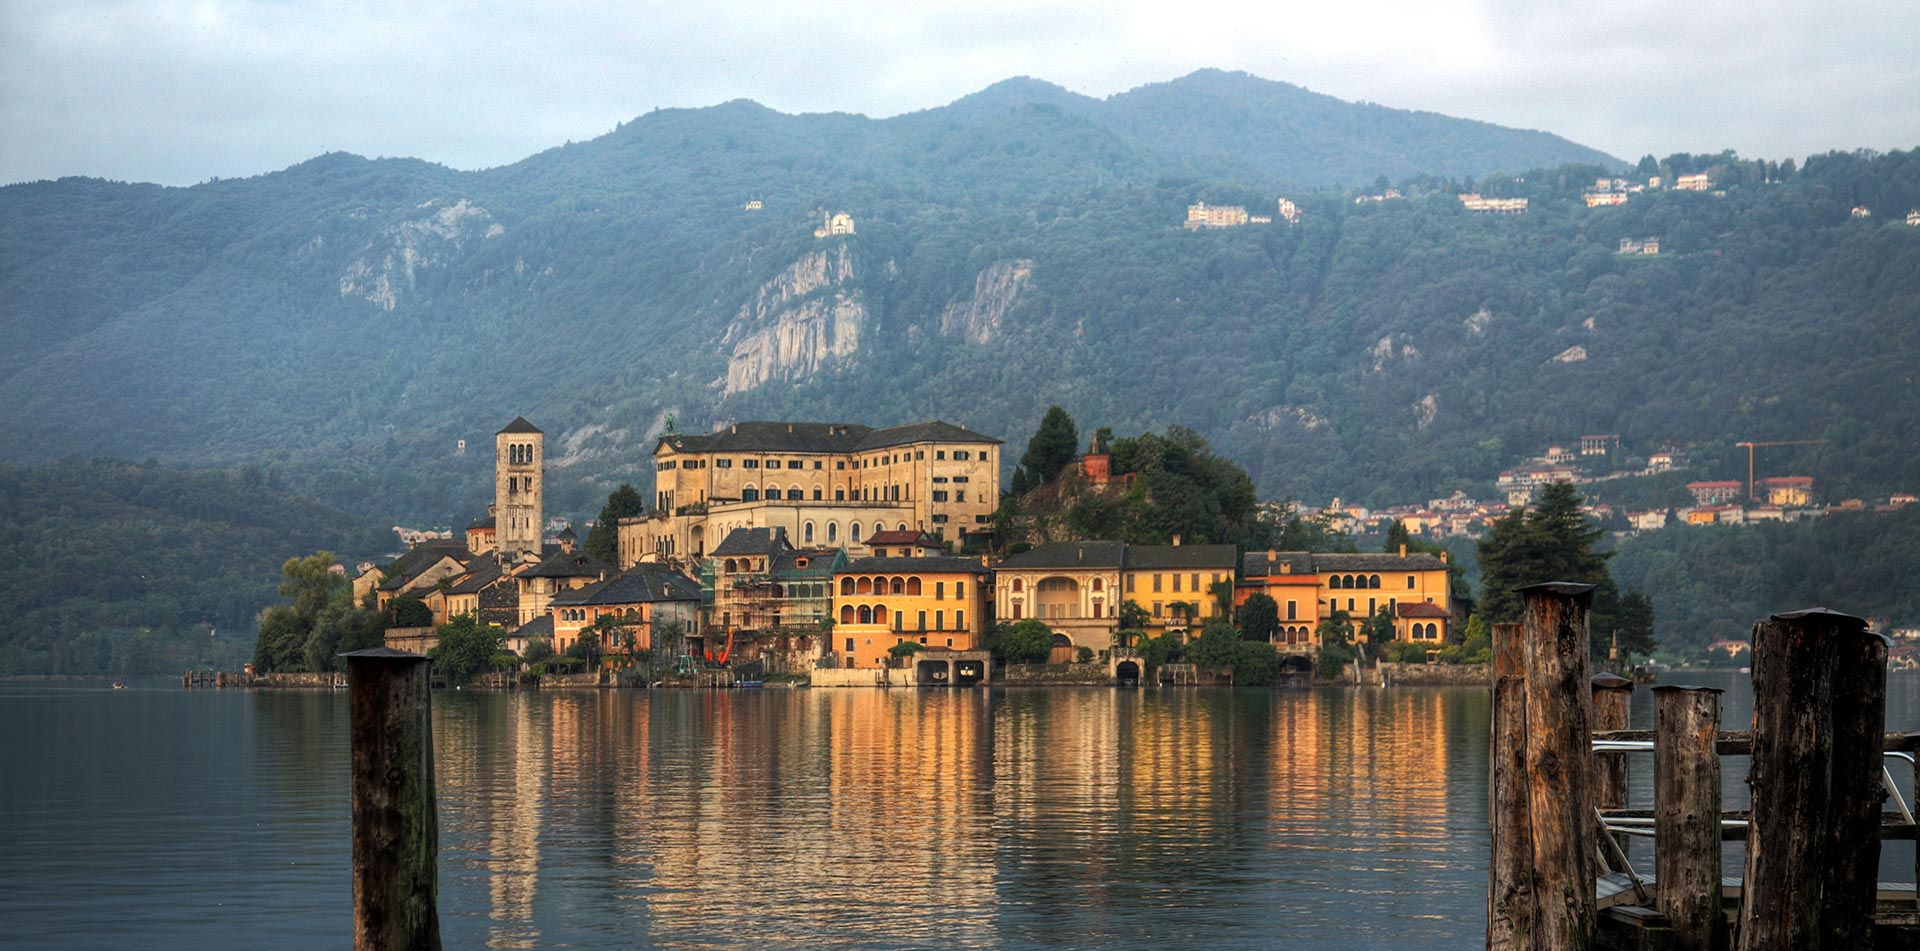 Europe Italy Lake Orta San Giulio Island rugged mountains colorful town scenic water view - luxury vacation destinations